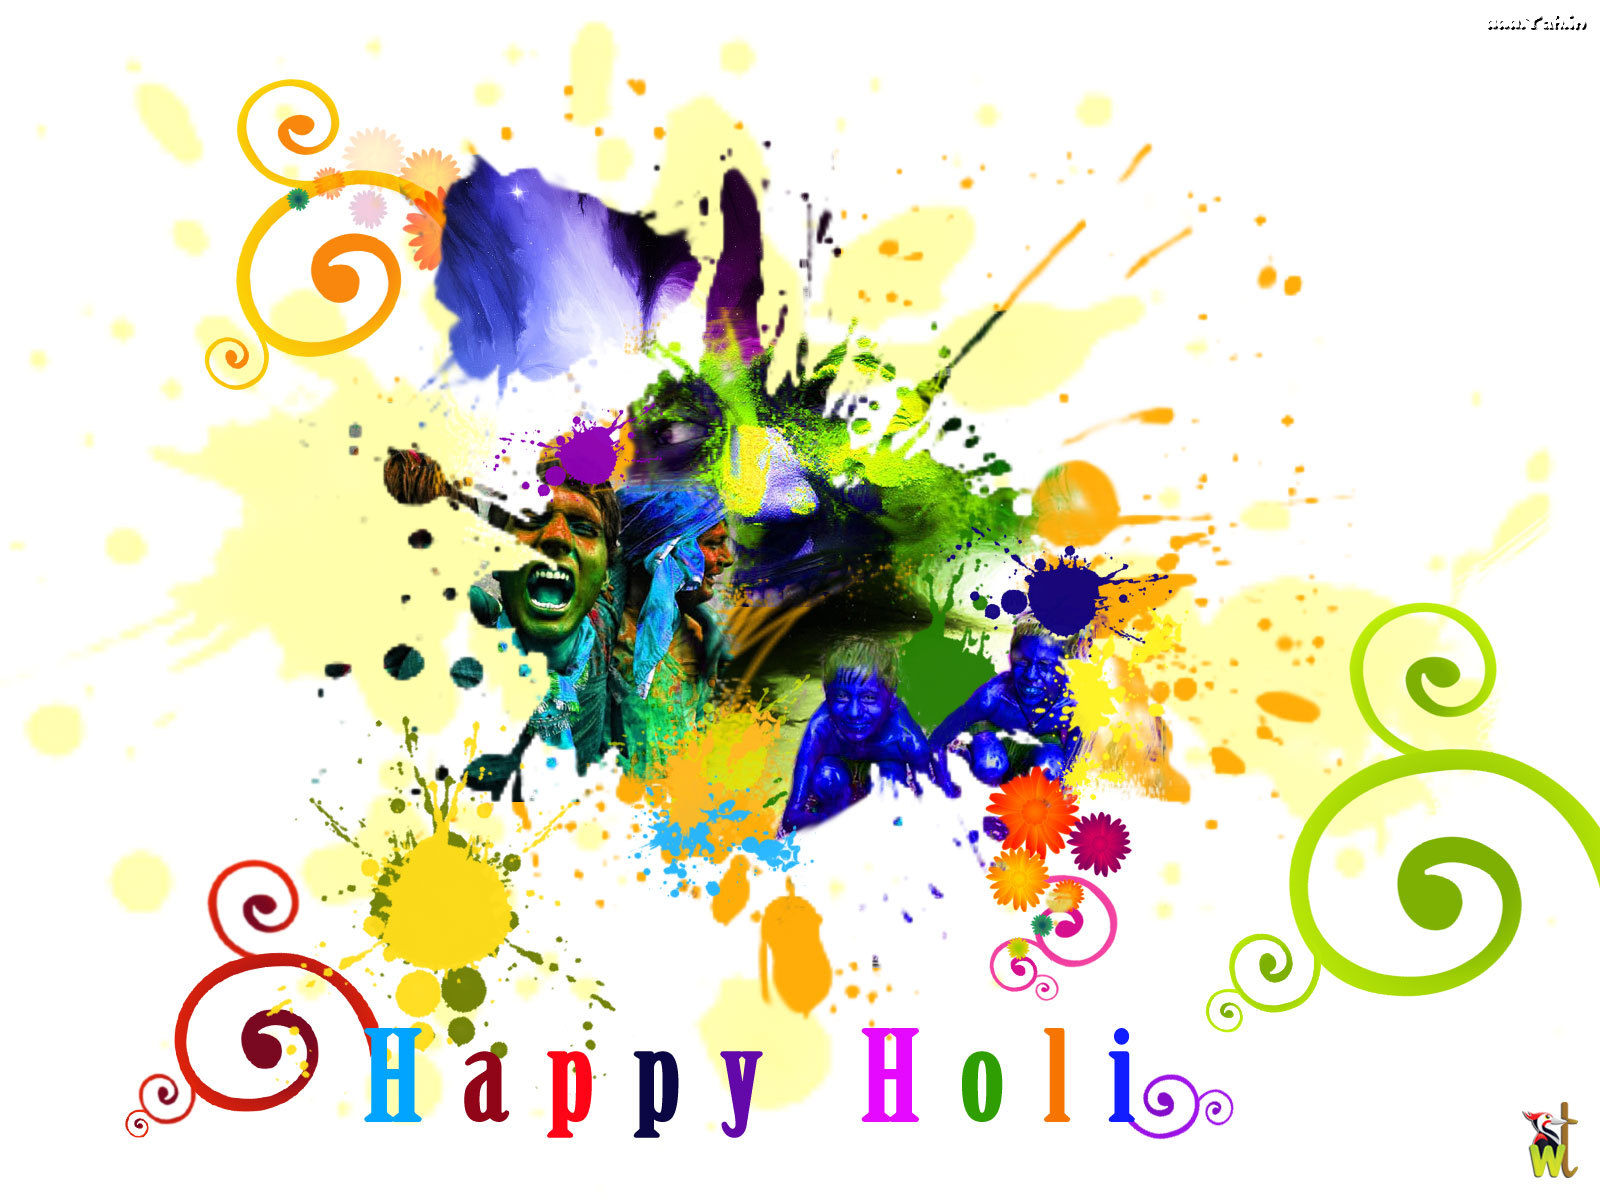 Happy Holi Widescreen HD Wallpaper 1600x1200   Holi Festival 1600x1200